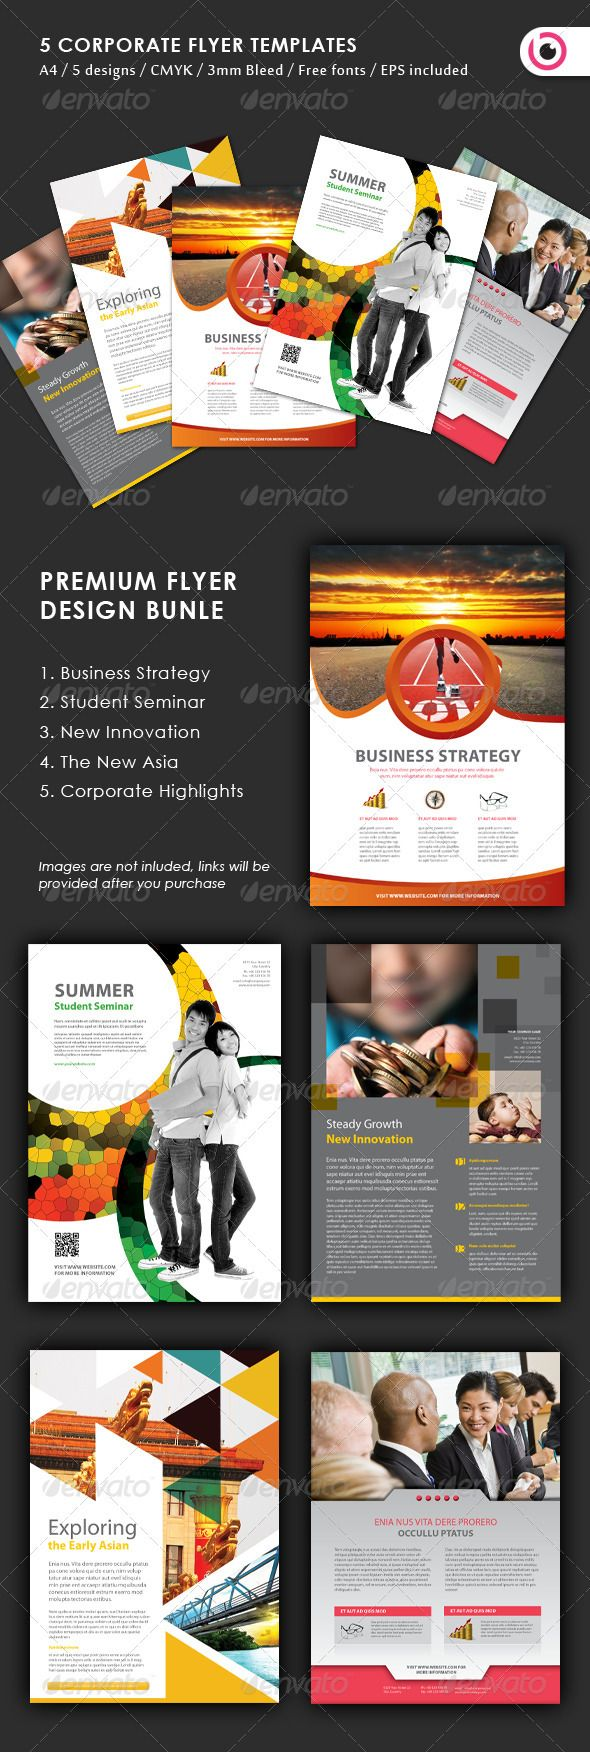 5 Flyer Design Templates - Corporate Flyers